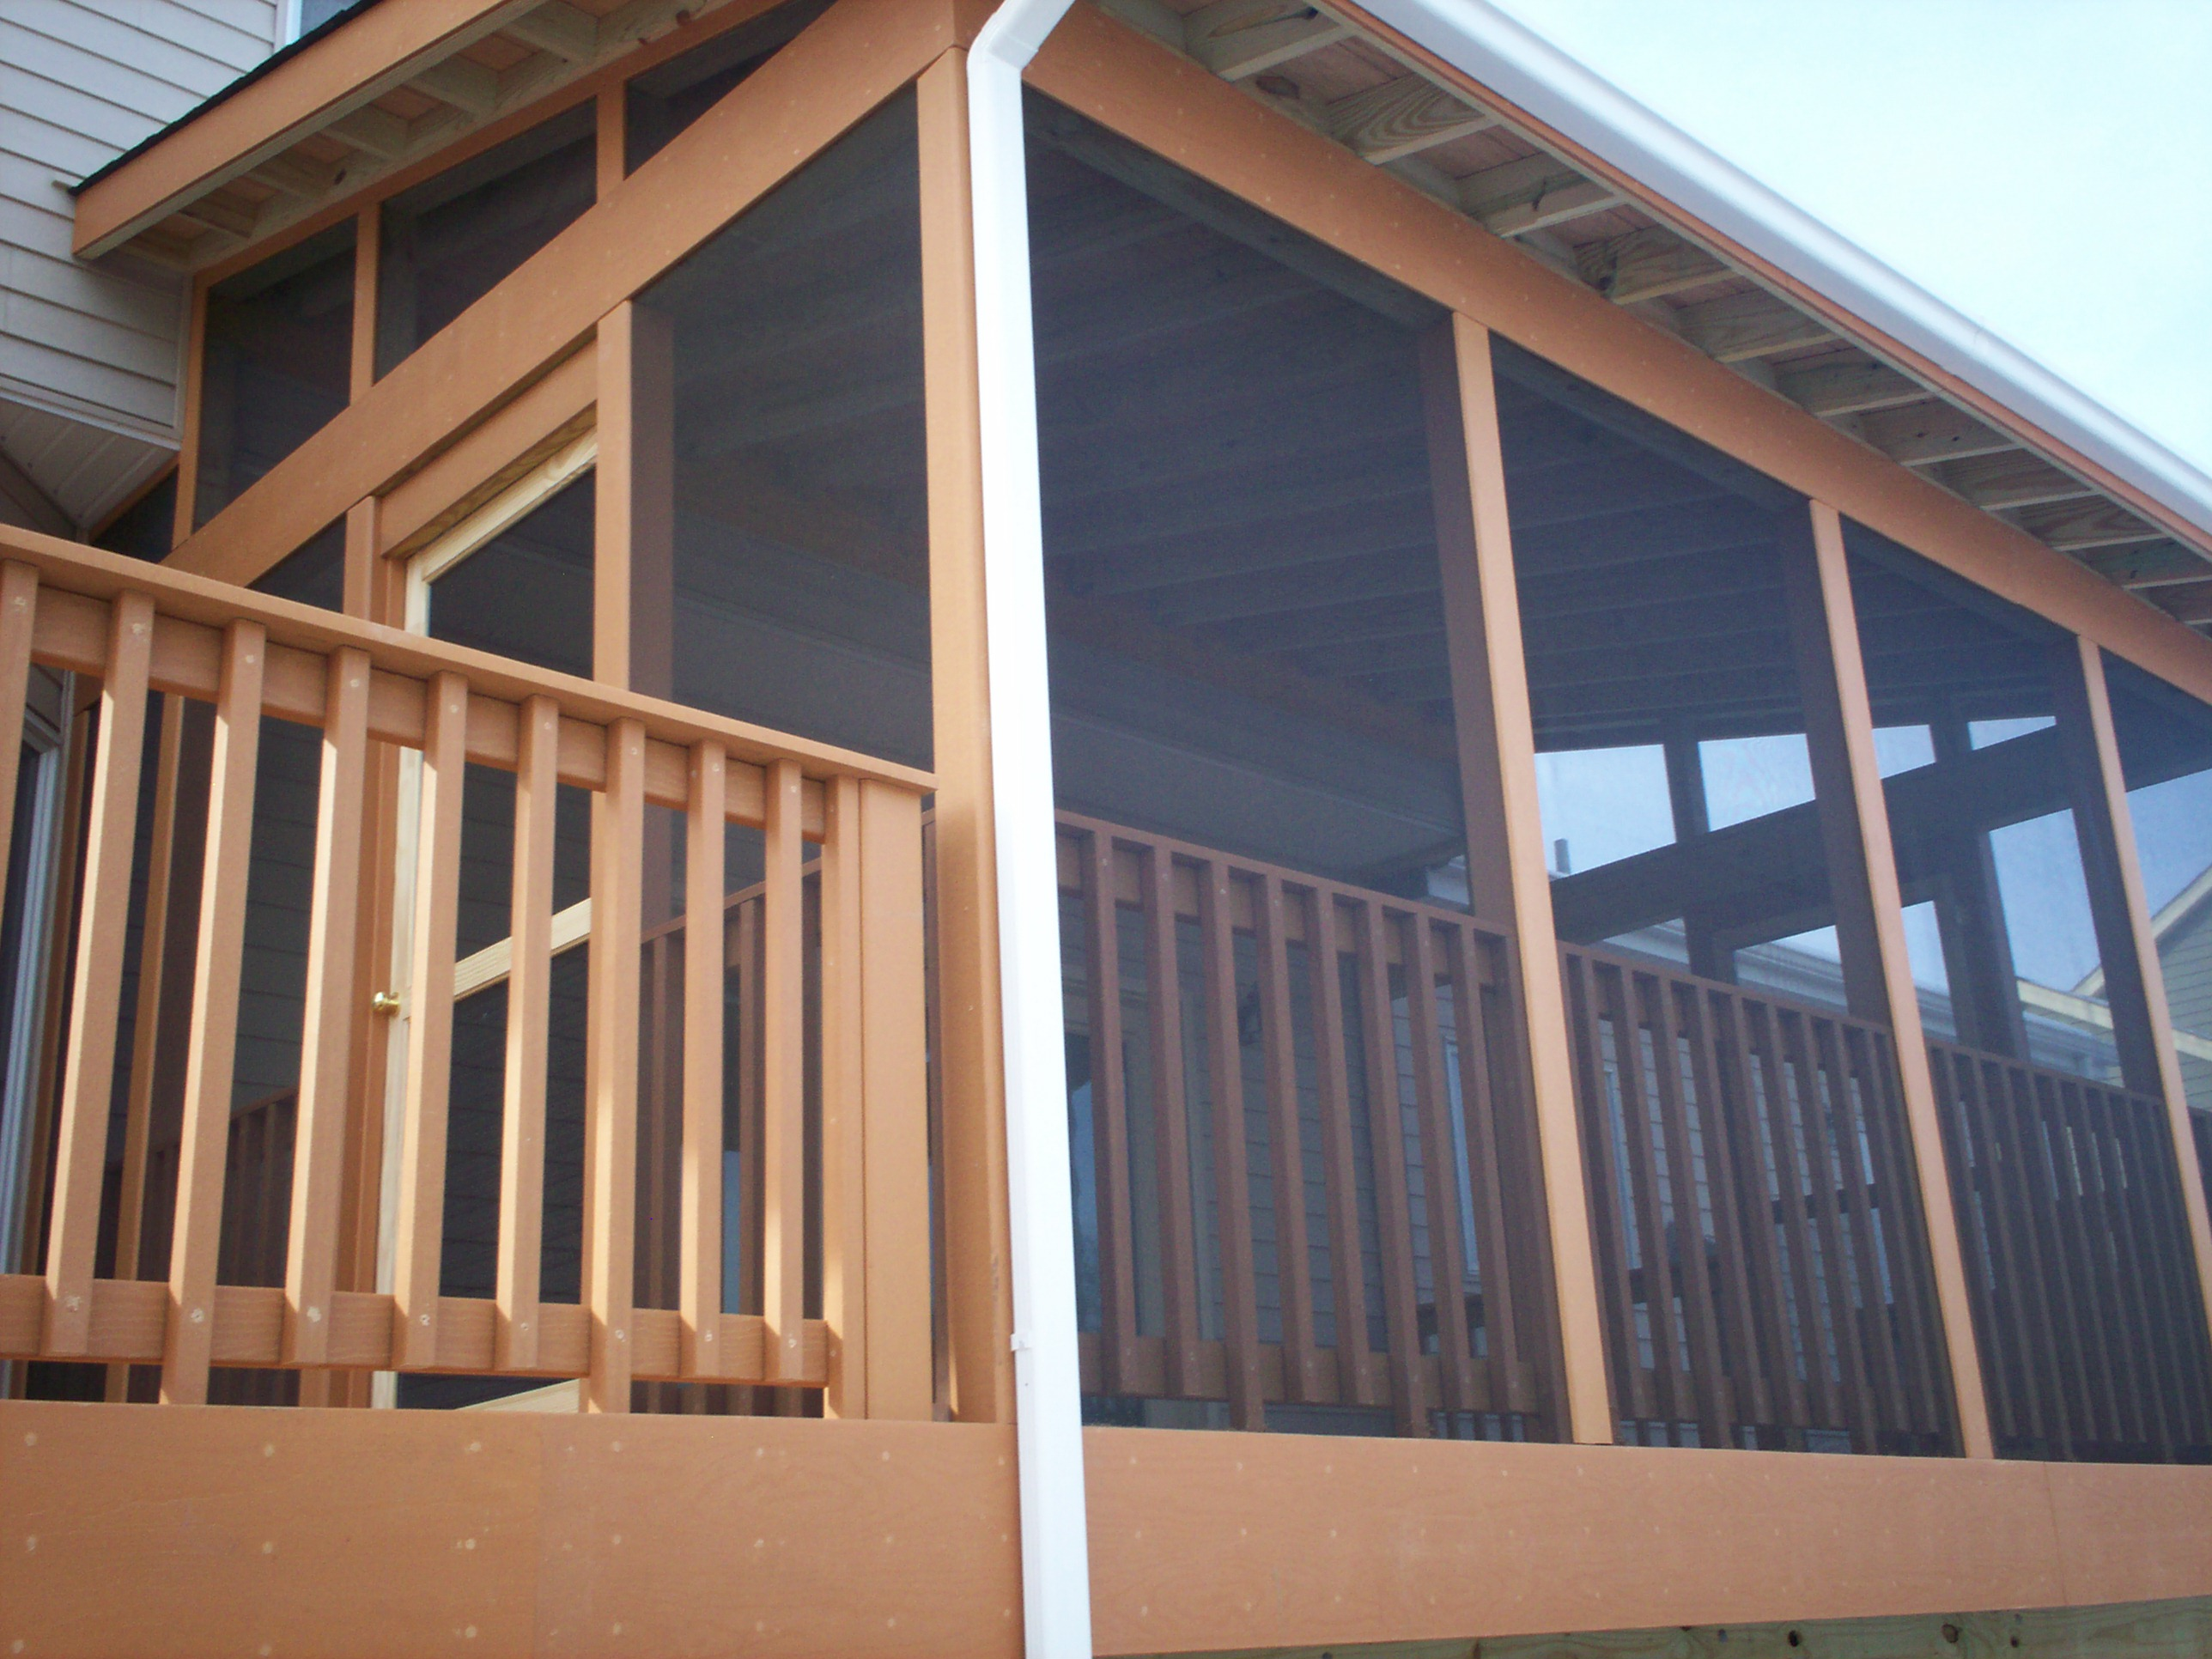 Screened porch designs st louis decks screened porches screen porch and deck in st louis baanklon Image collections